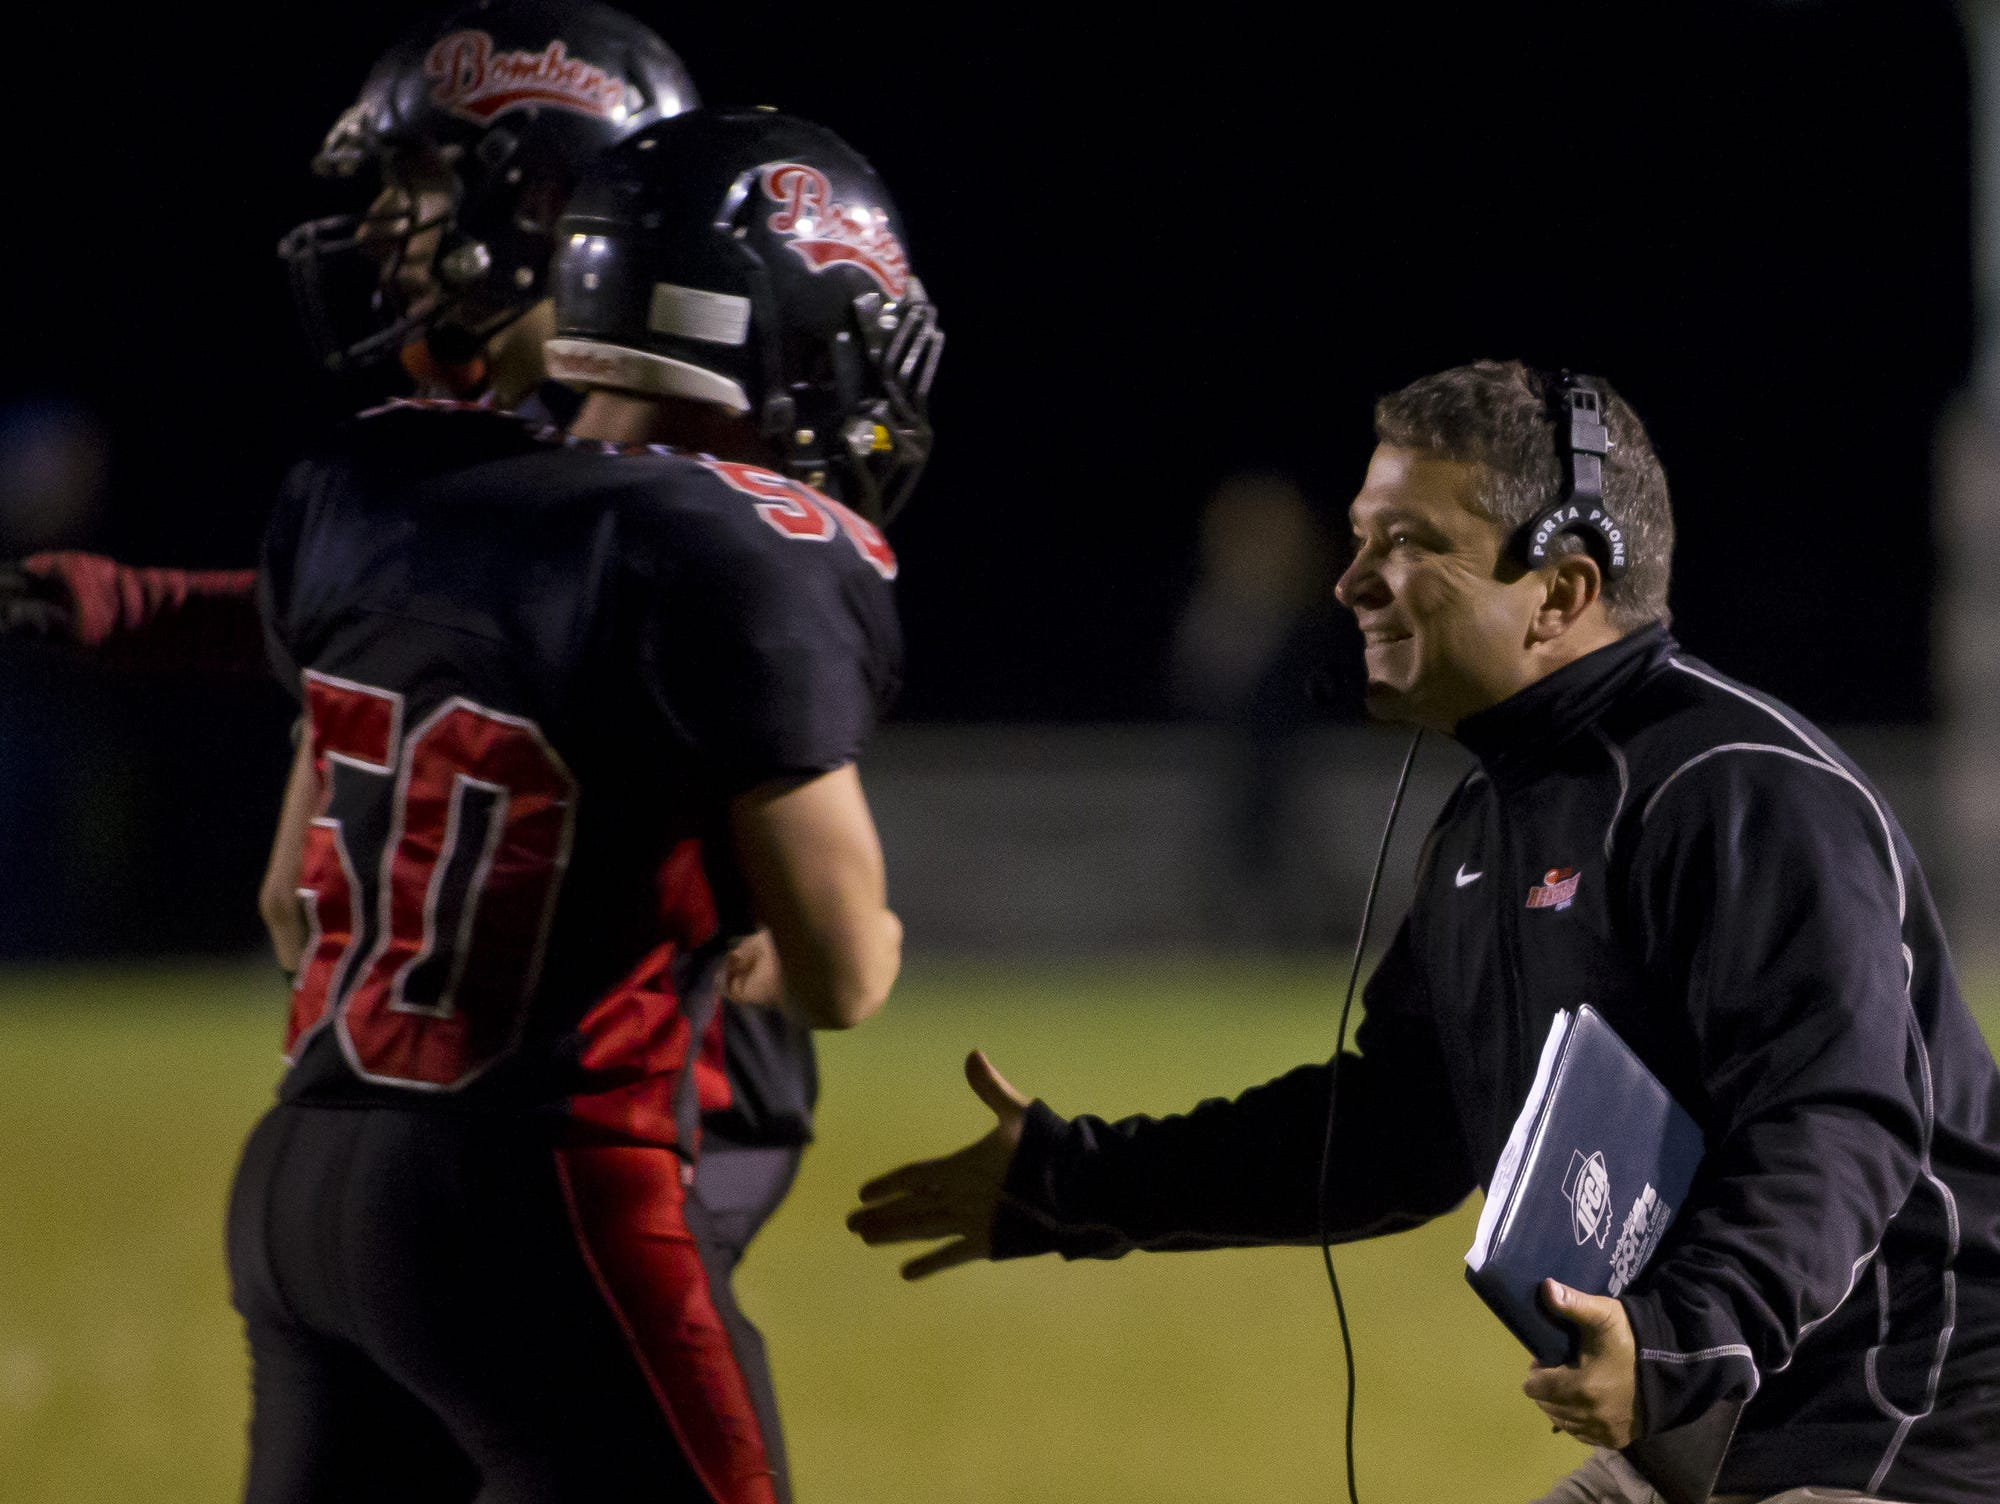 Rensselaer's coach Chris Meeks celebrates a stop during their game against Central Catholic Friday, October 10, 2014, in Rensselaer. The Bombers beat CC 9-0.